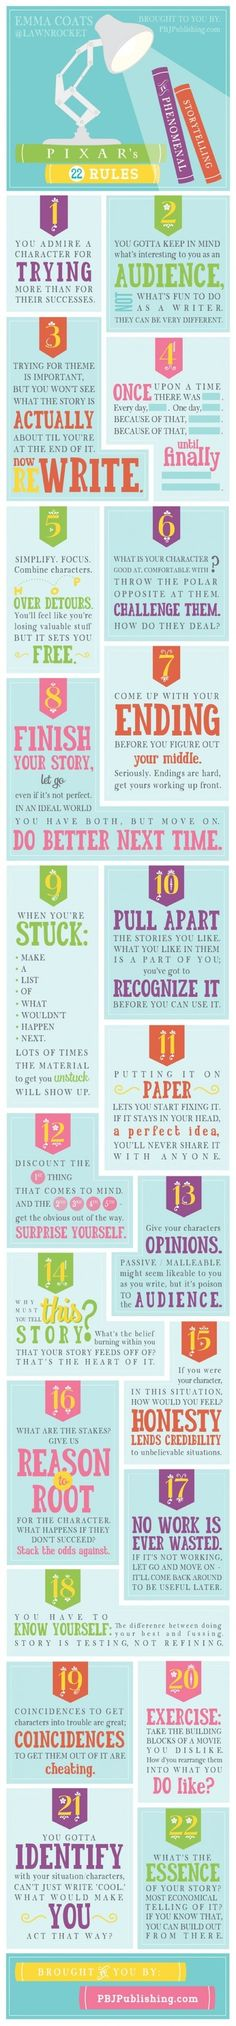 Pixar's 22 Rules to Phenomenal Storytelling [AS an INFOGRAPHIC] | Tracking Transmedia | Scoop.it